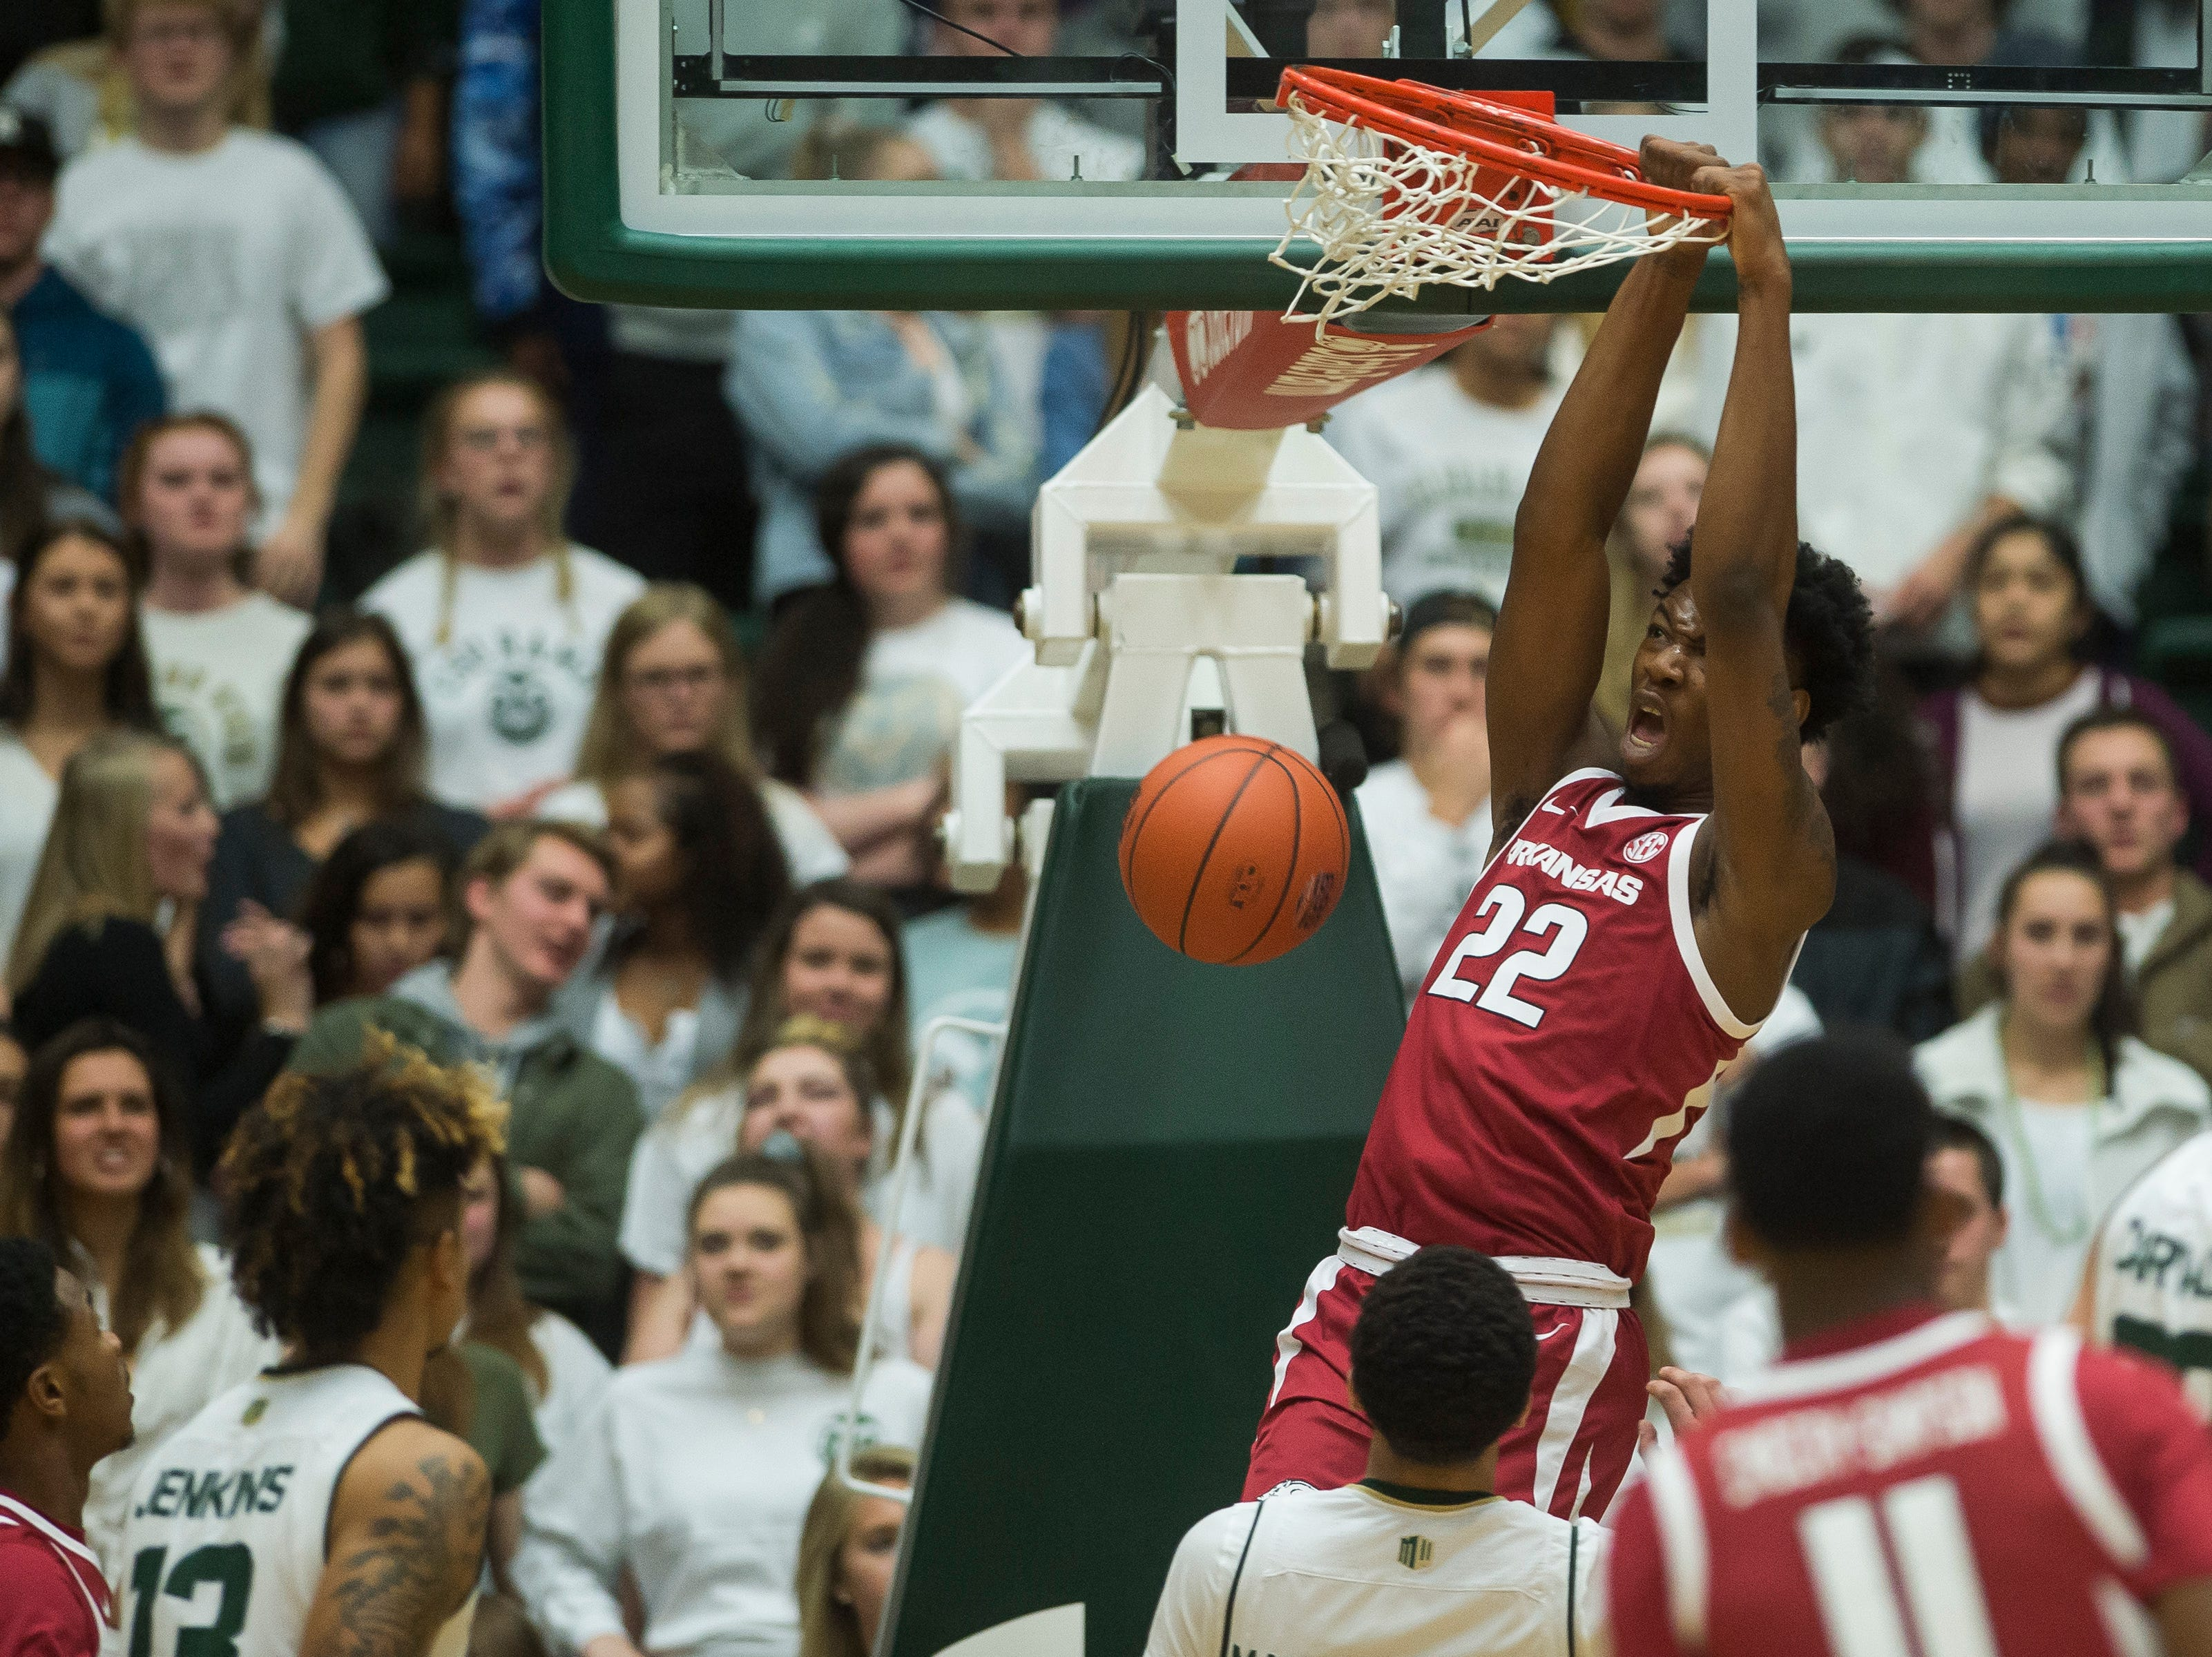 Arkansas sophomore forward Gabe Osabuohien (22) dunks on Colorado State University on Wednesday, Dec. 5, 2018, Moby Arena in Fort Collins, Colo.